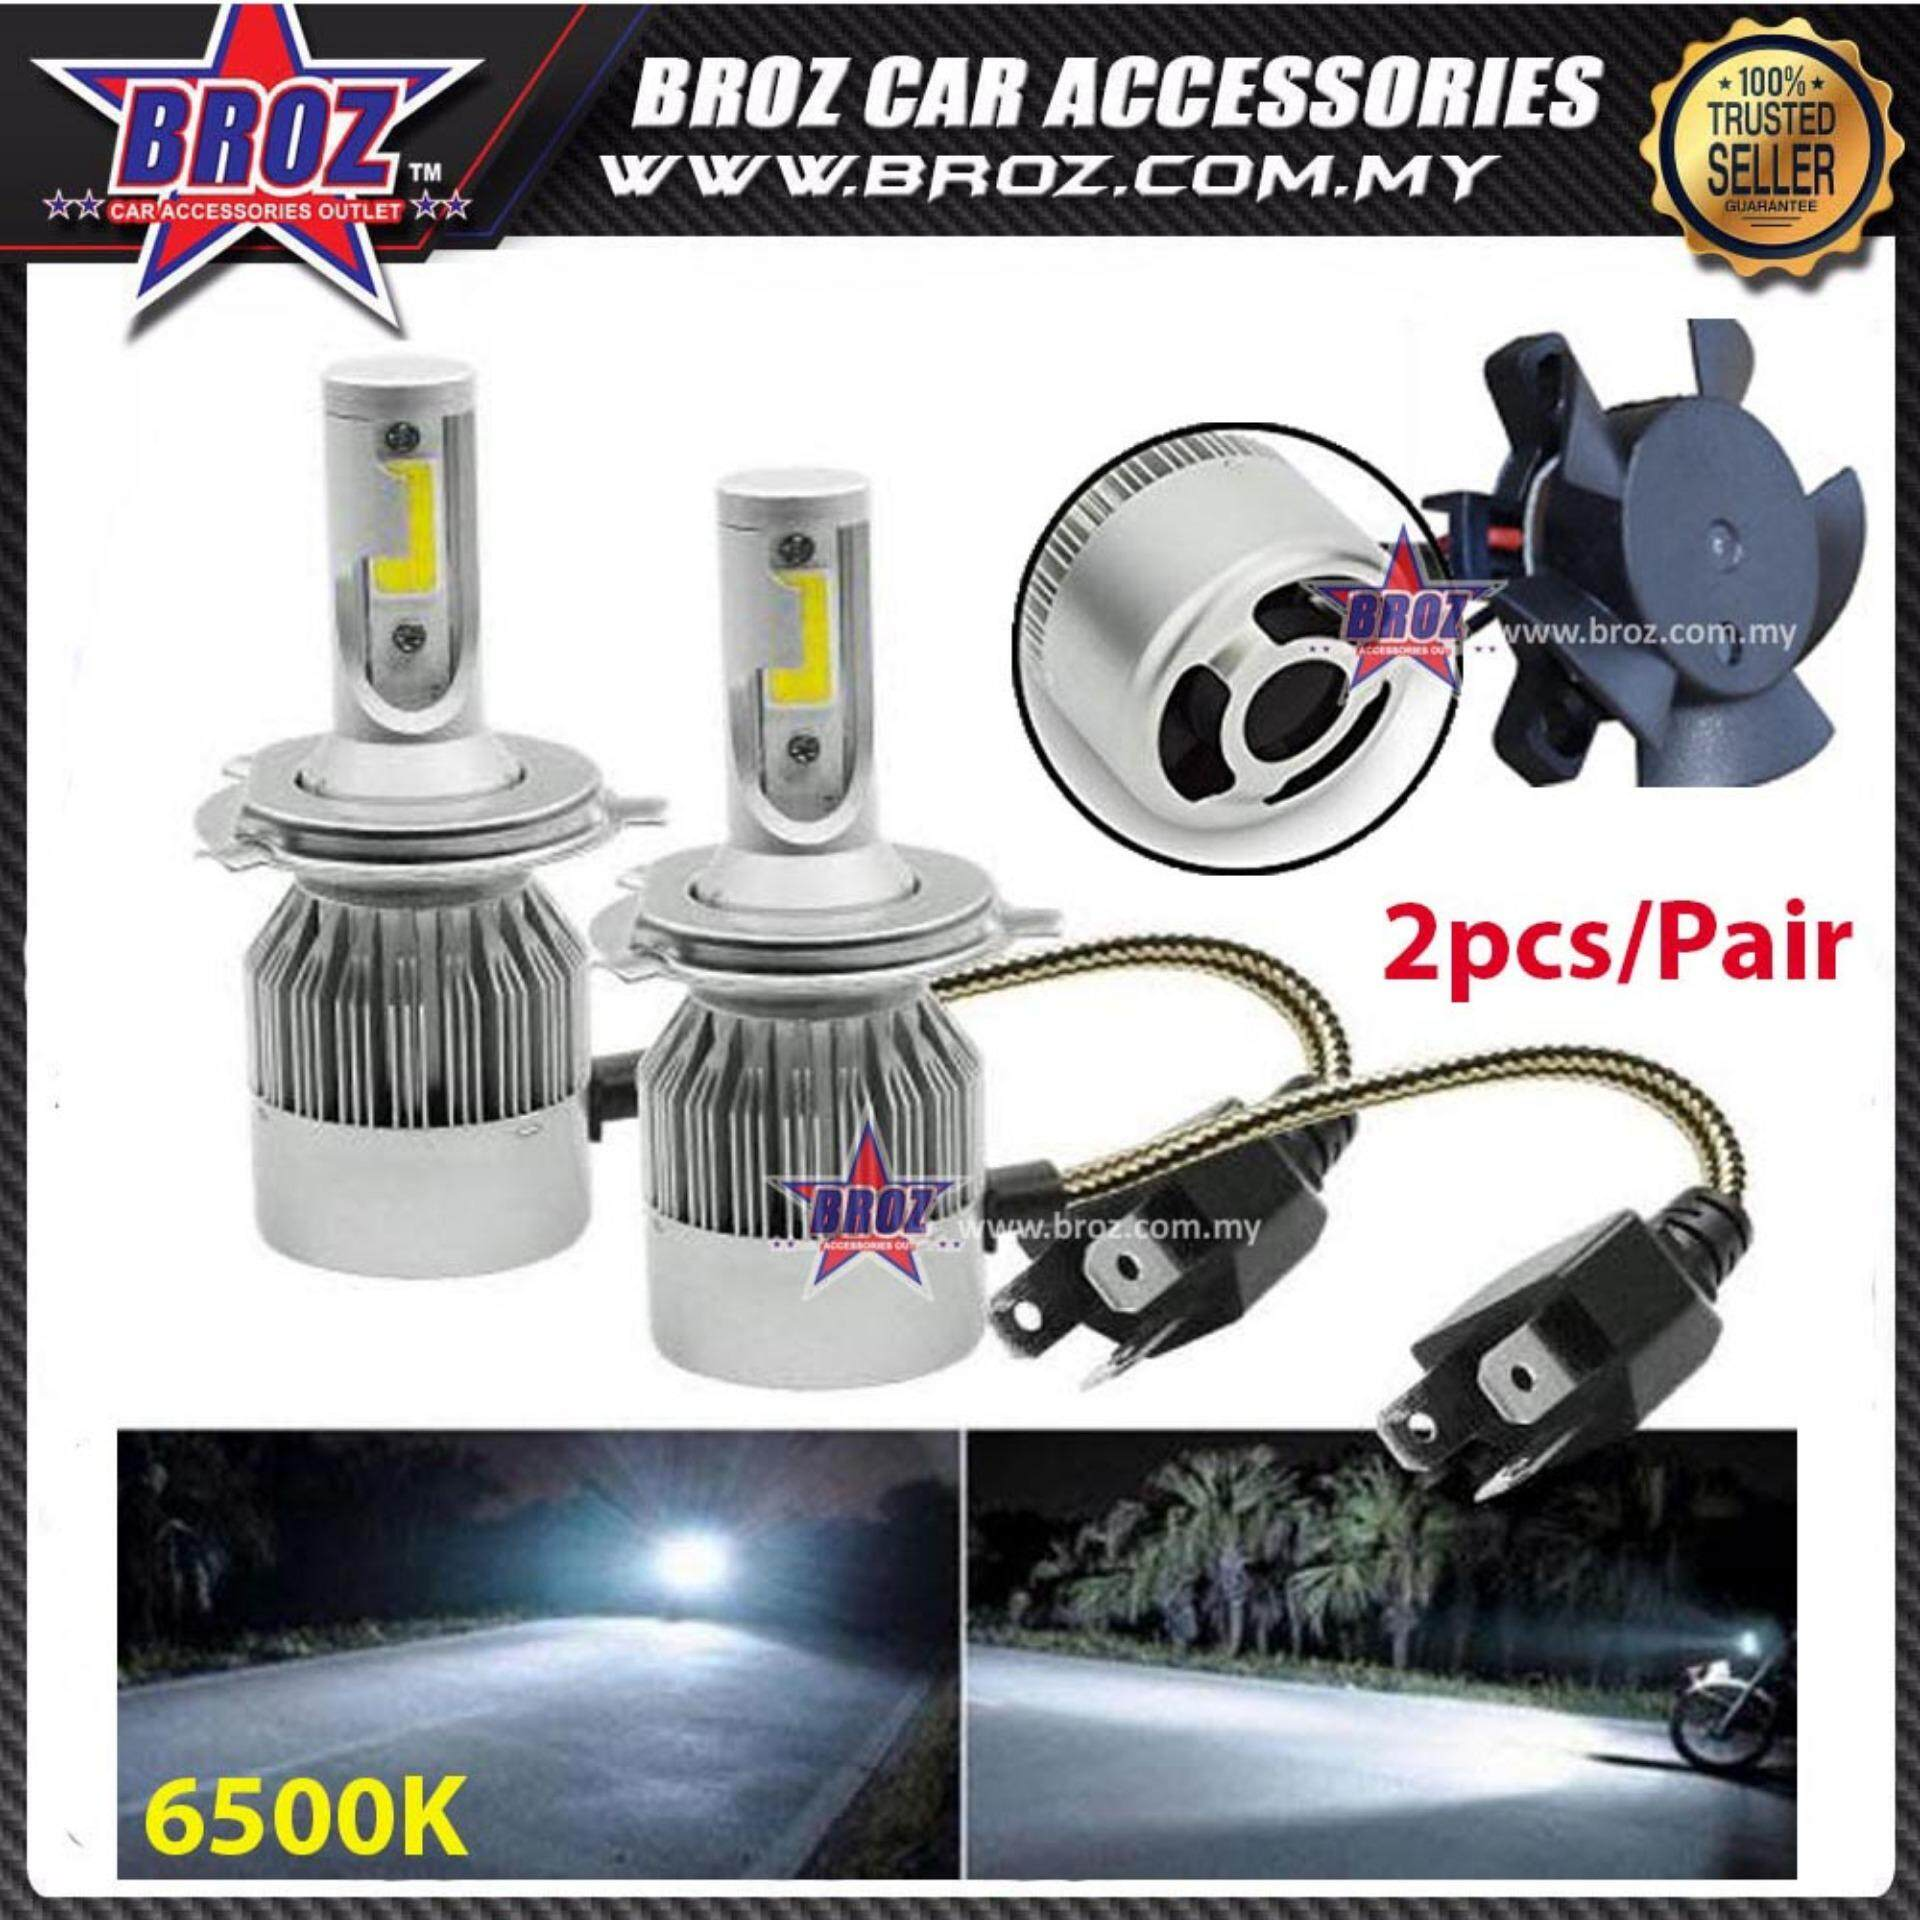 Harga Lampu Headlamp Wira Proton Wira Head Lamp C6 Led Light Car Headlight Auto Head Light Lamp 6500k White Light Free Osram T10 Led